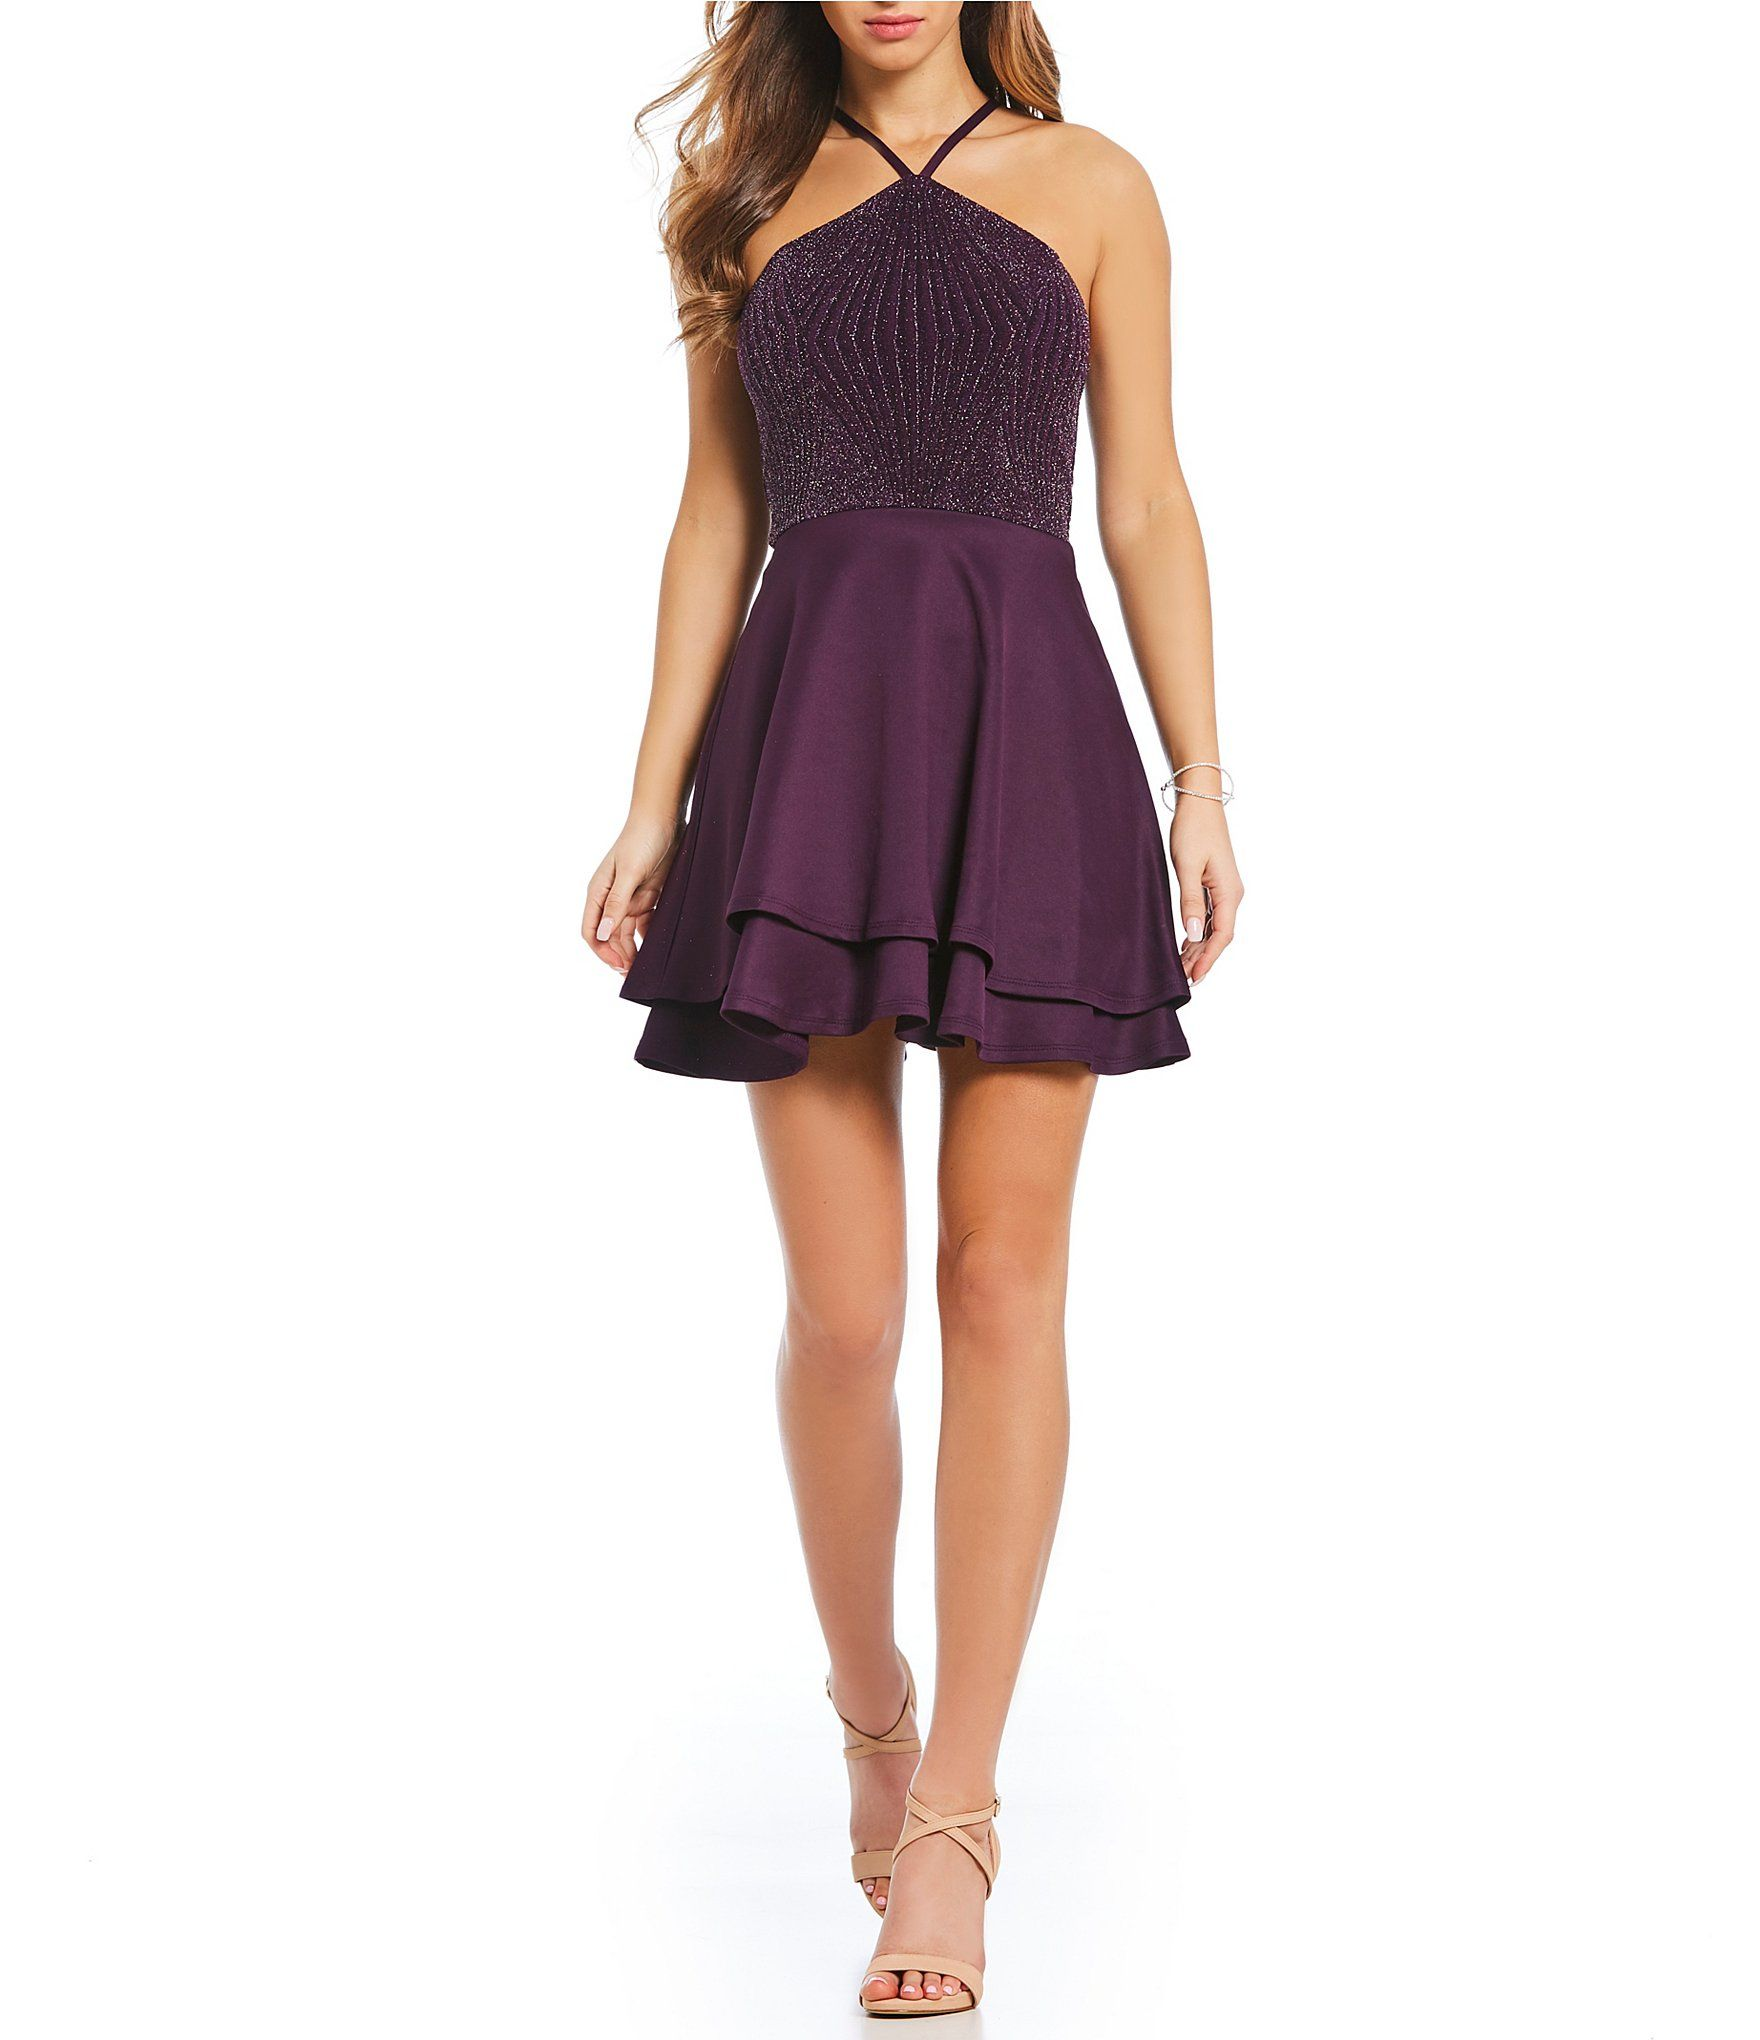 Xtraordinary YNeck FitAndFlare Dress Dillards